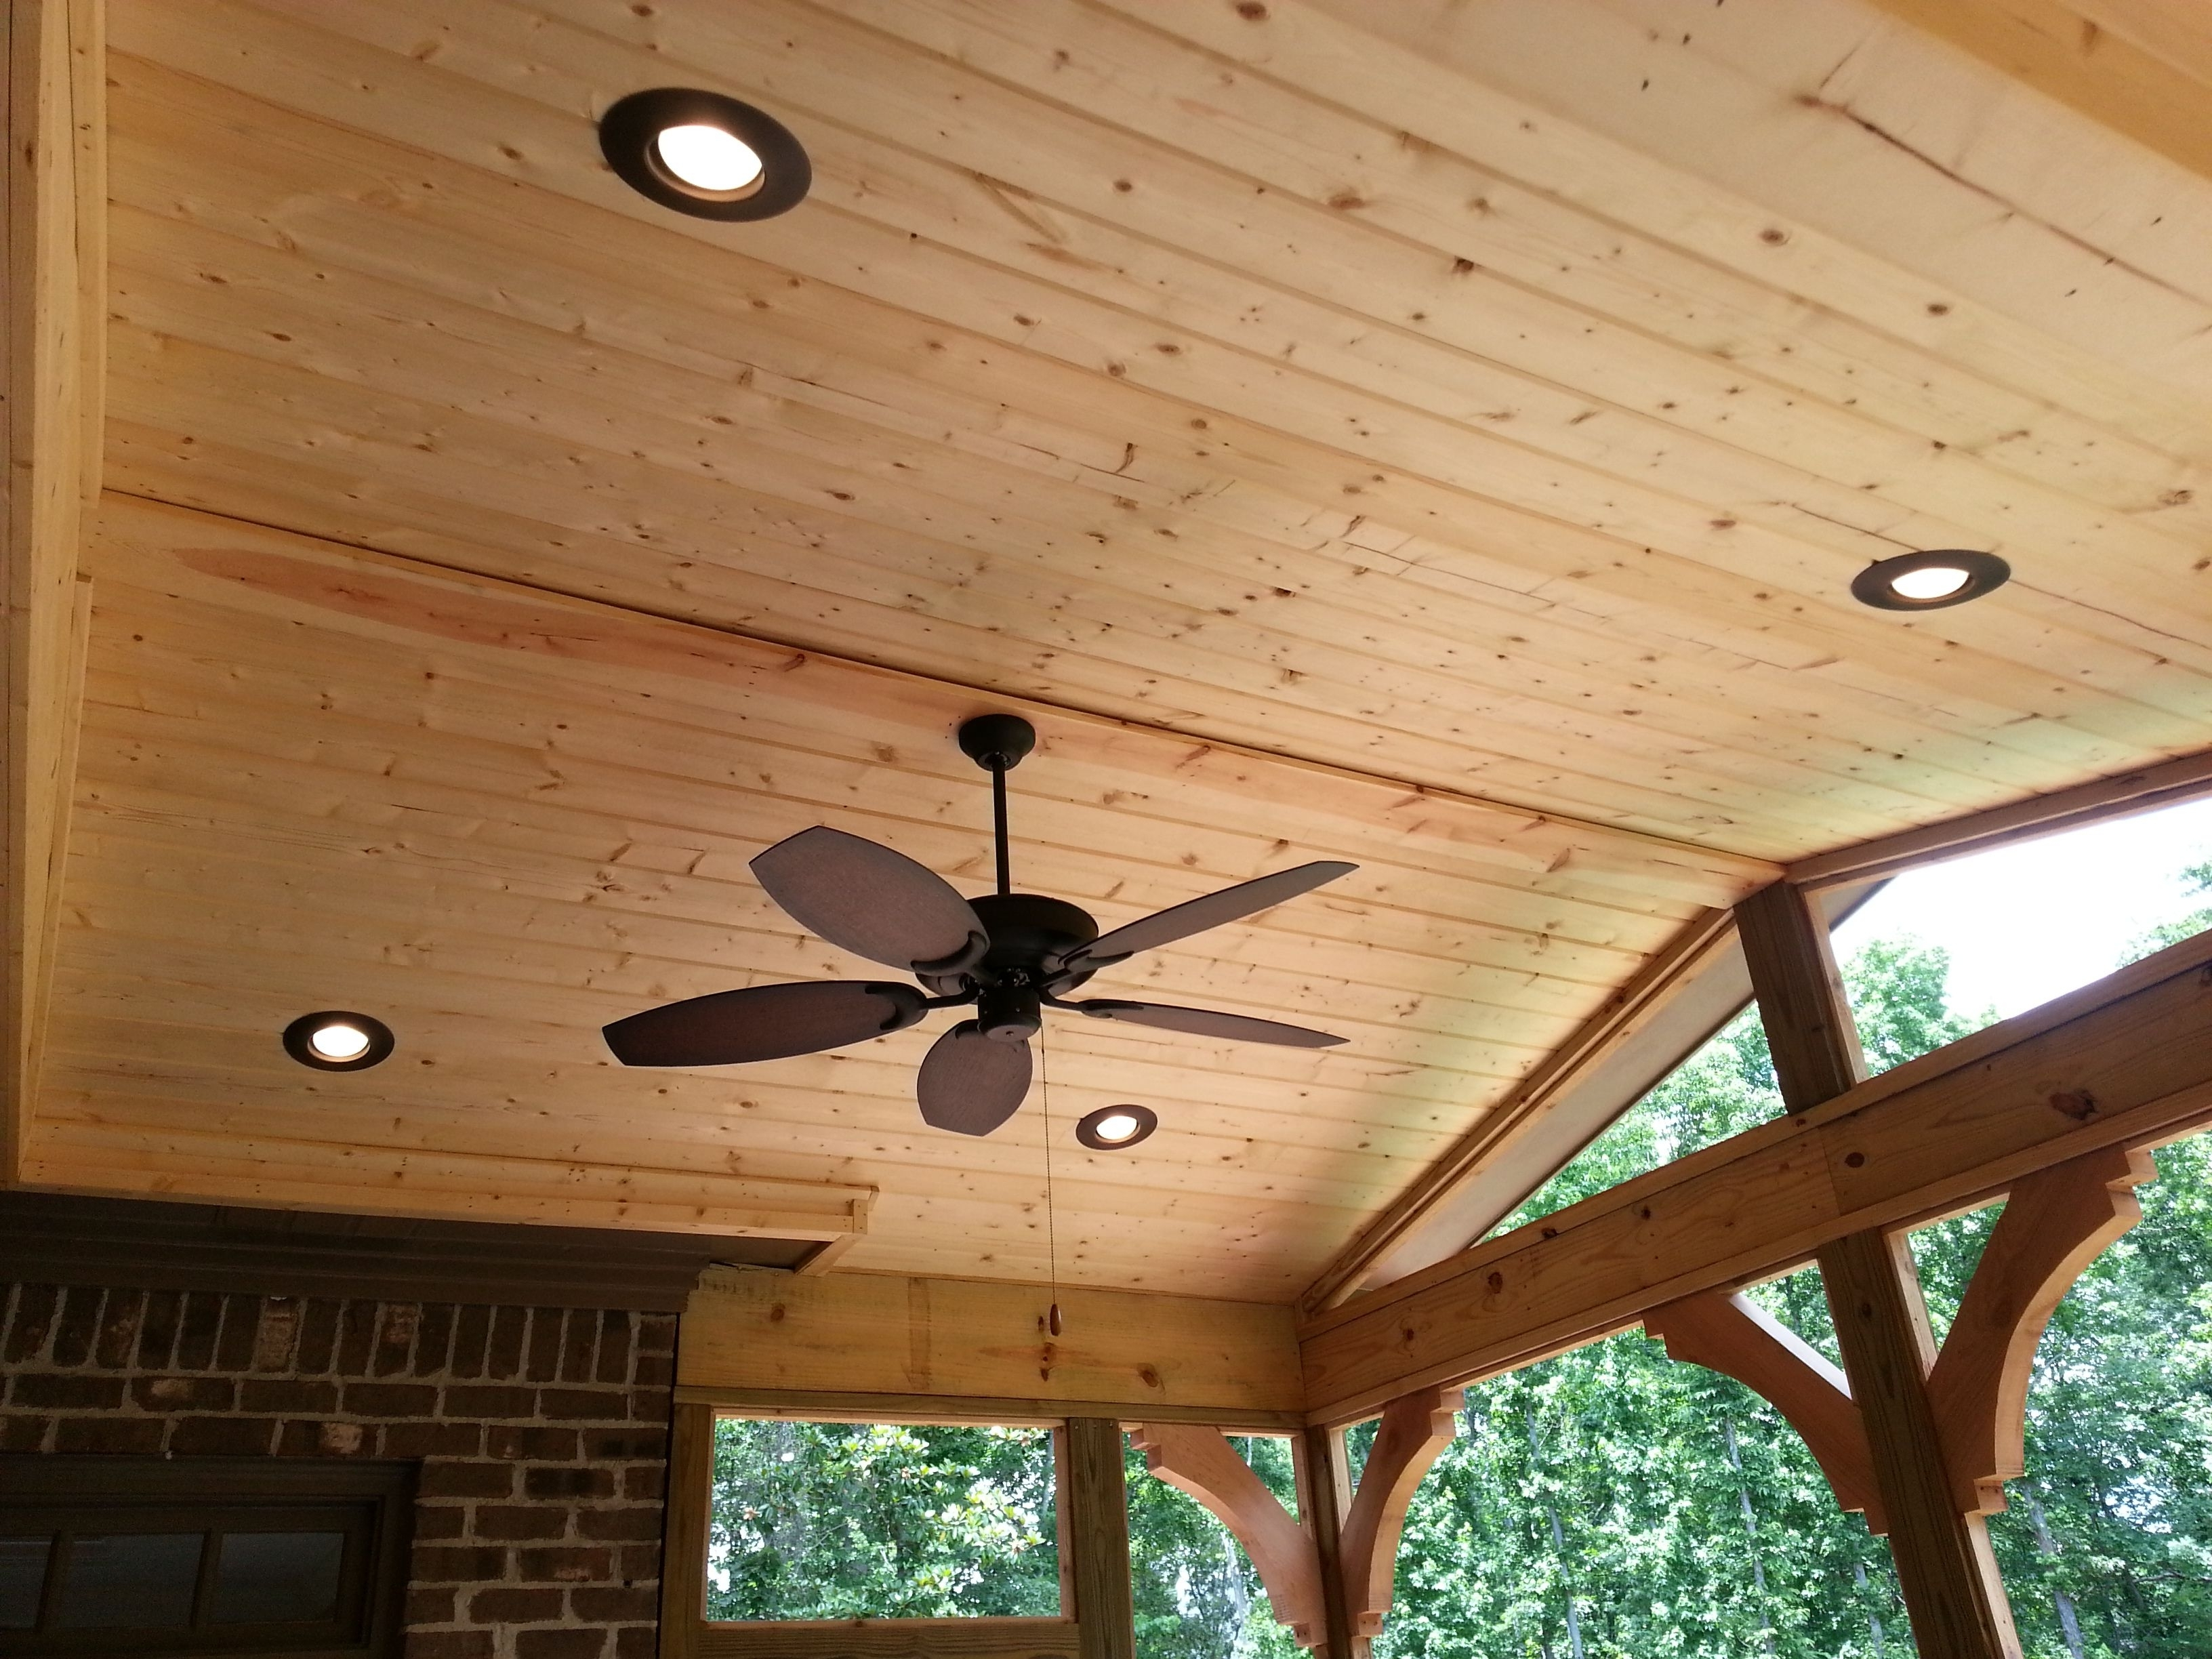 Finished Ceiling With Ceiling Fan And Can Lights – Design Ideas Inside Fashionable Outdoor Ceiling Fan Under Deck (Gallery 20 of 20)